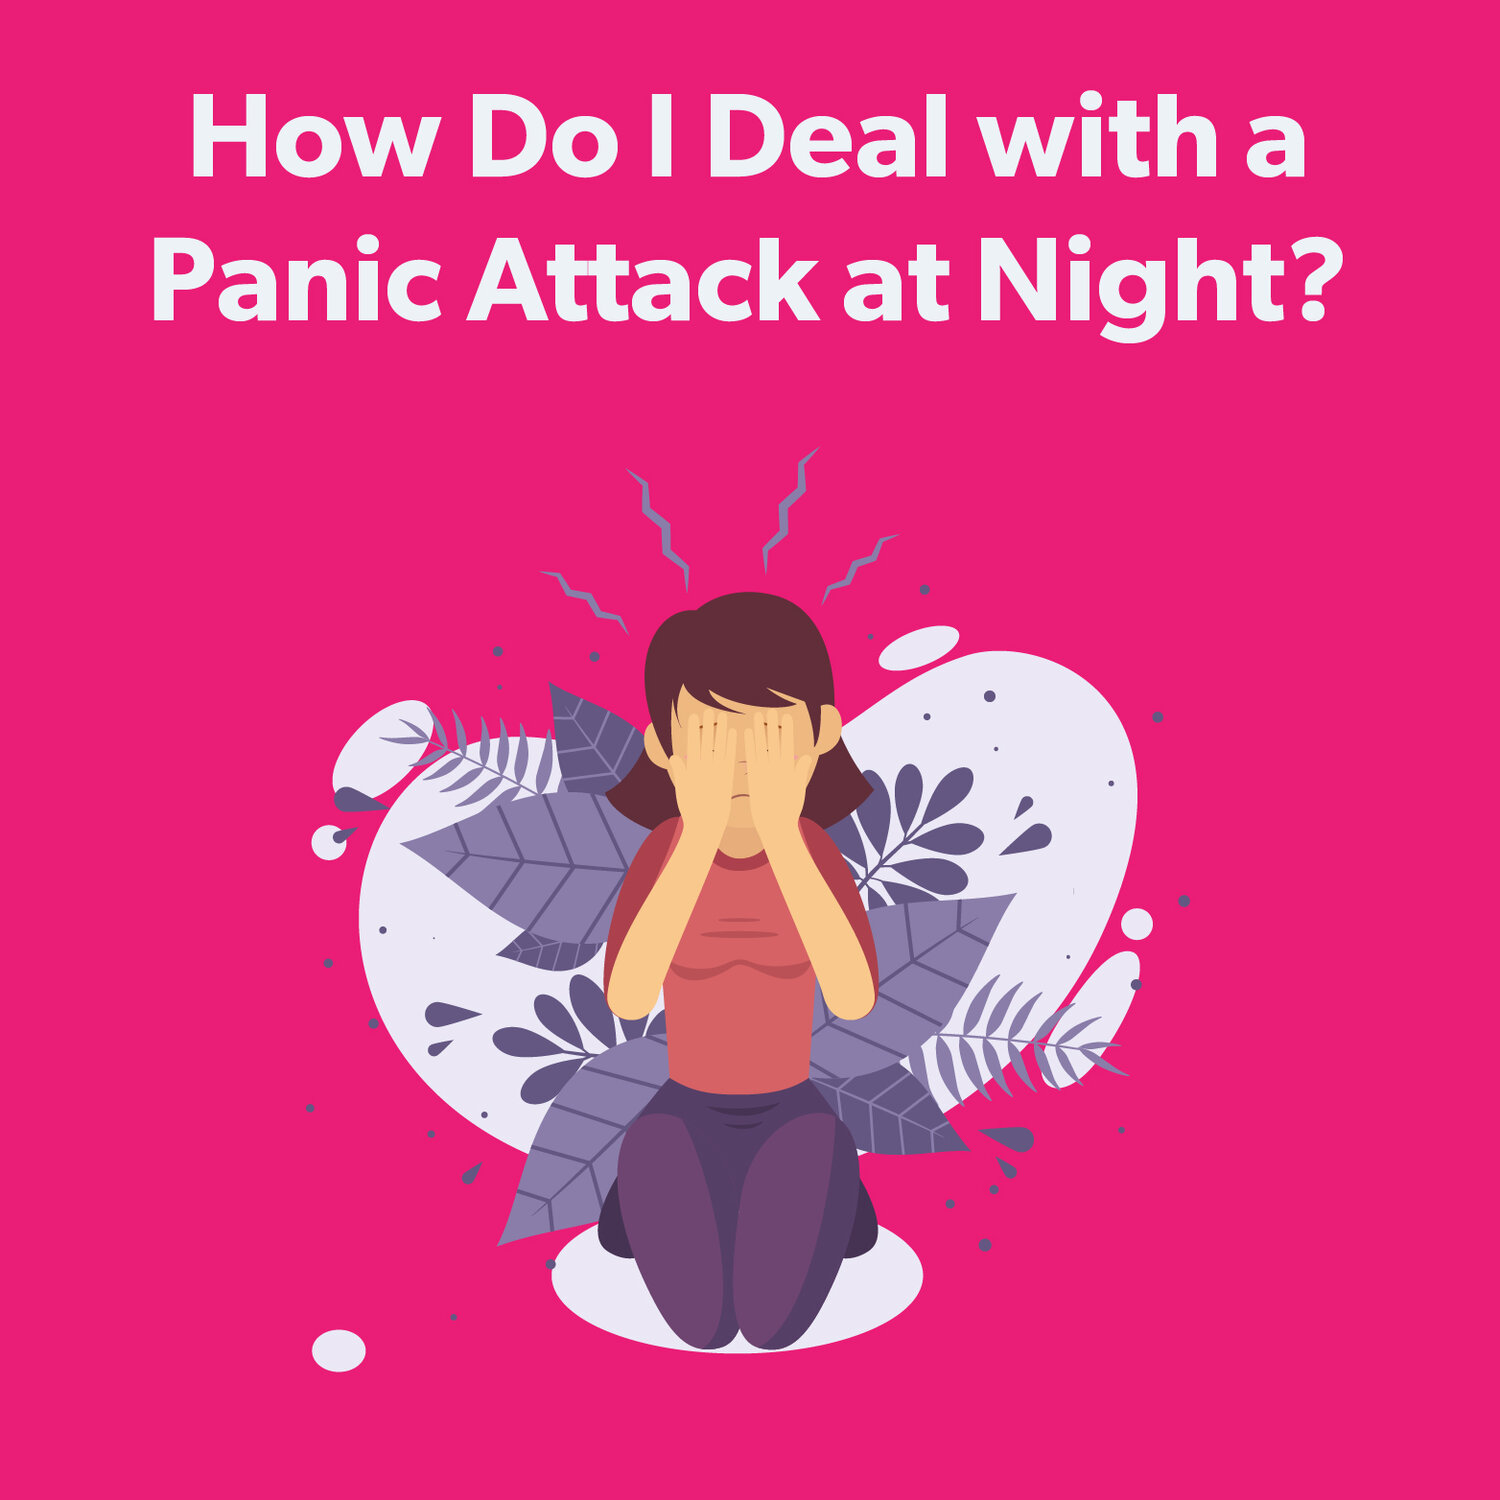 What To Do When Having An Anxiety Attack At Night